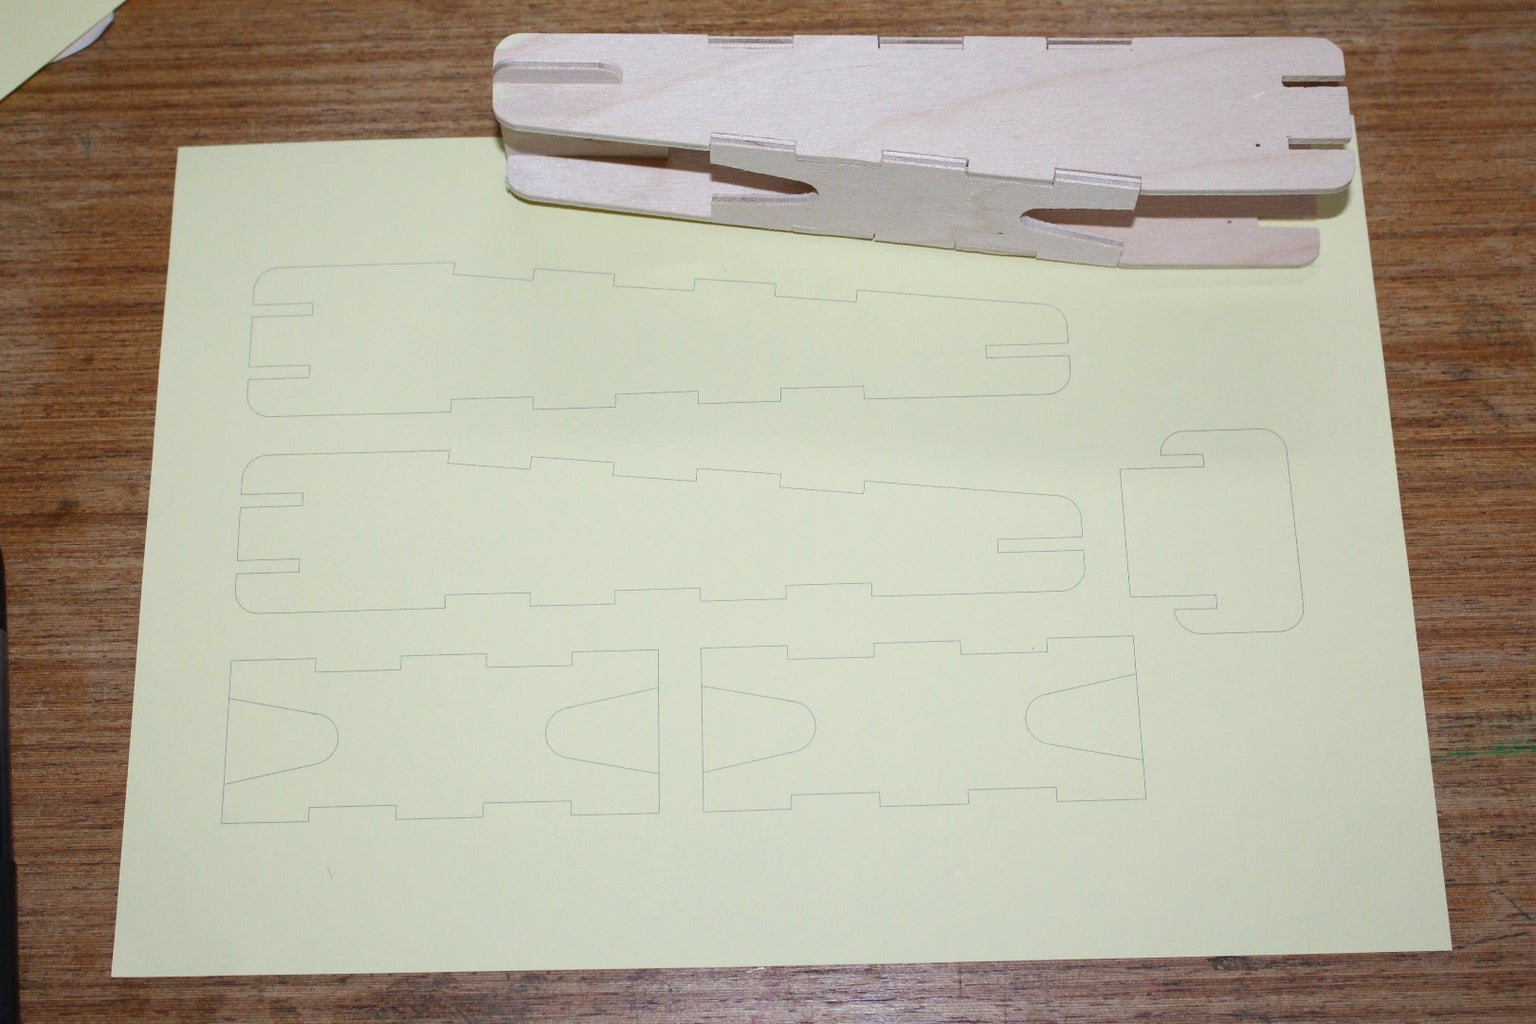 Sequence of Build.